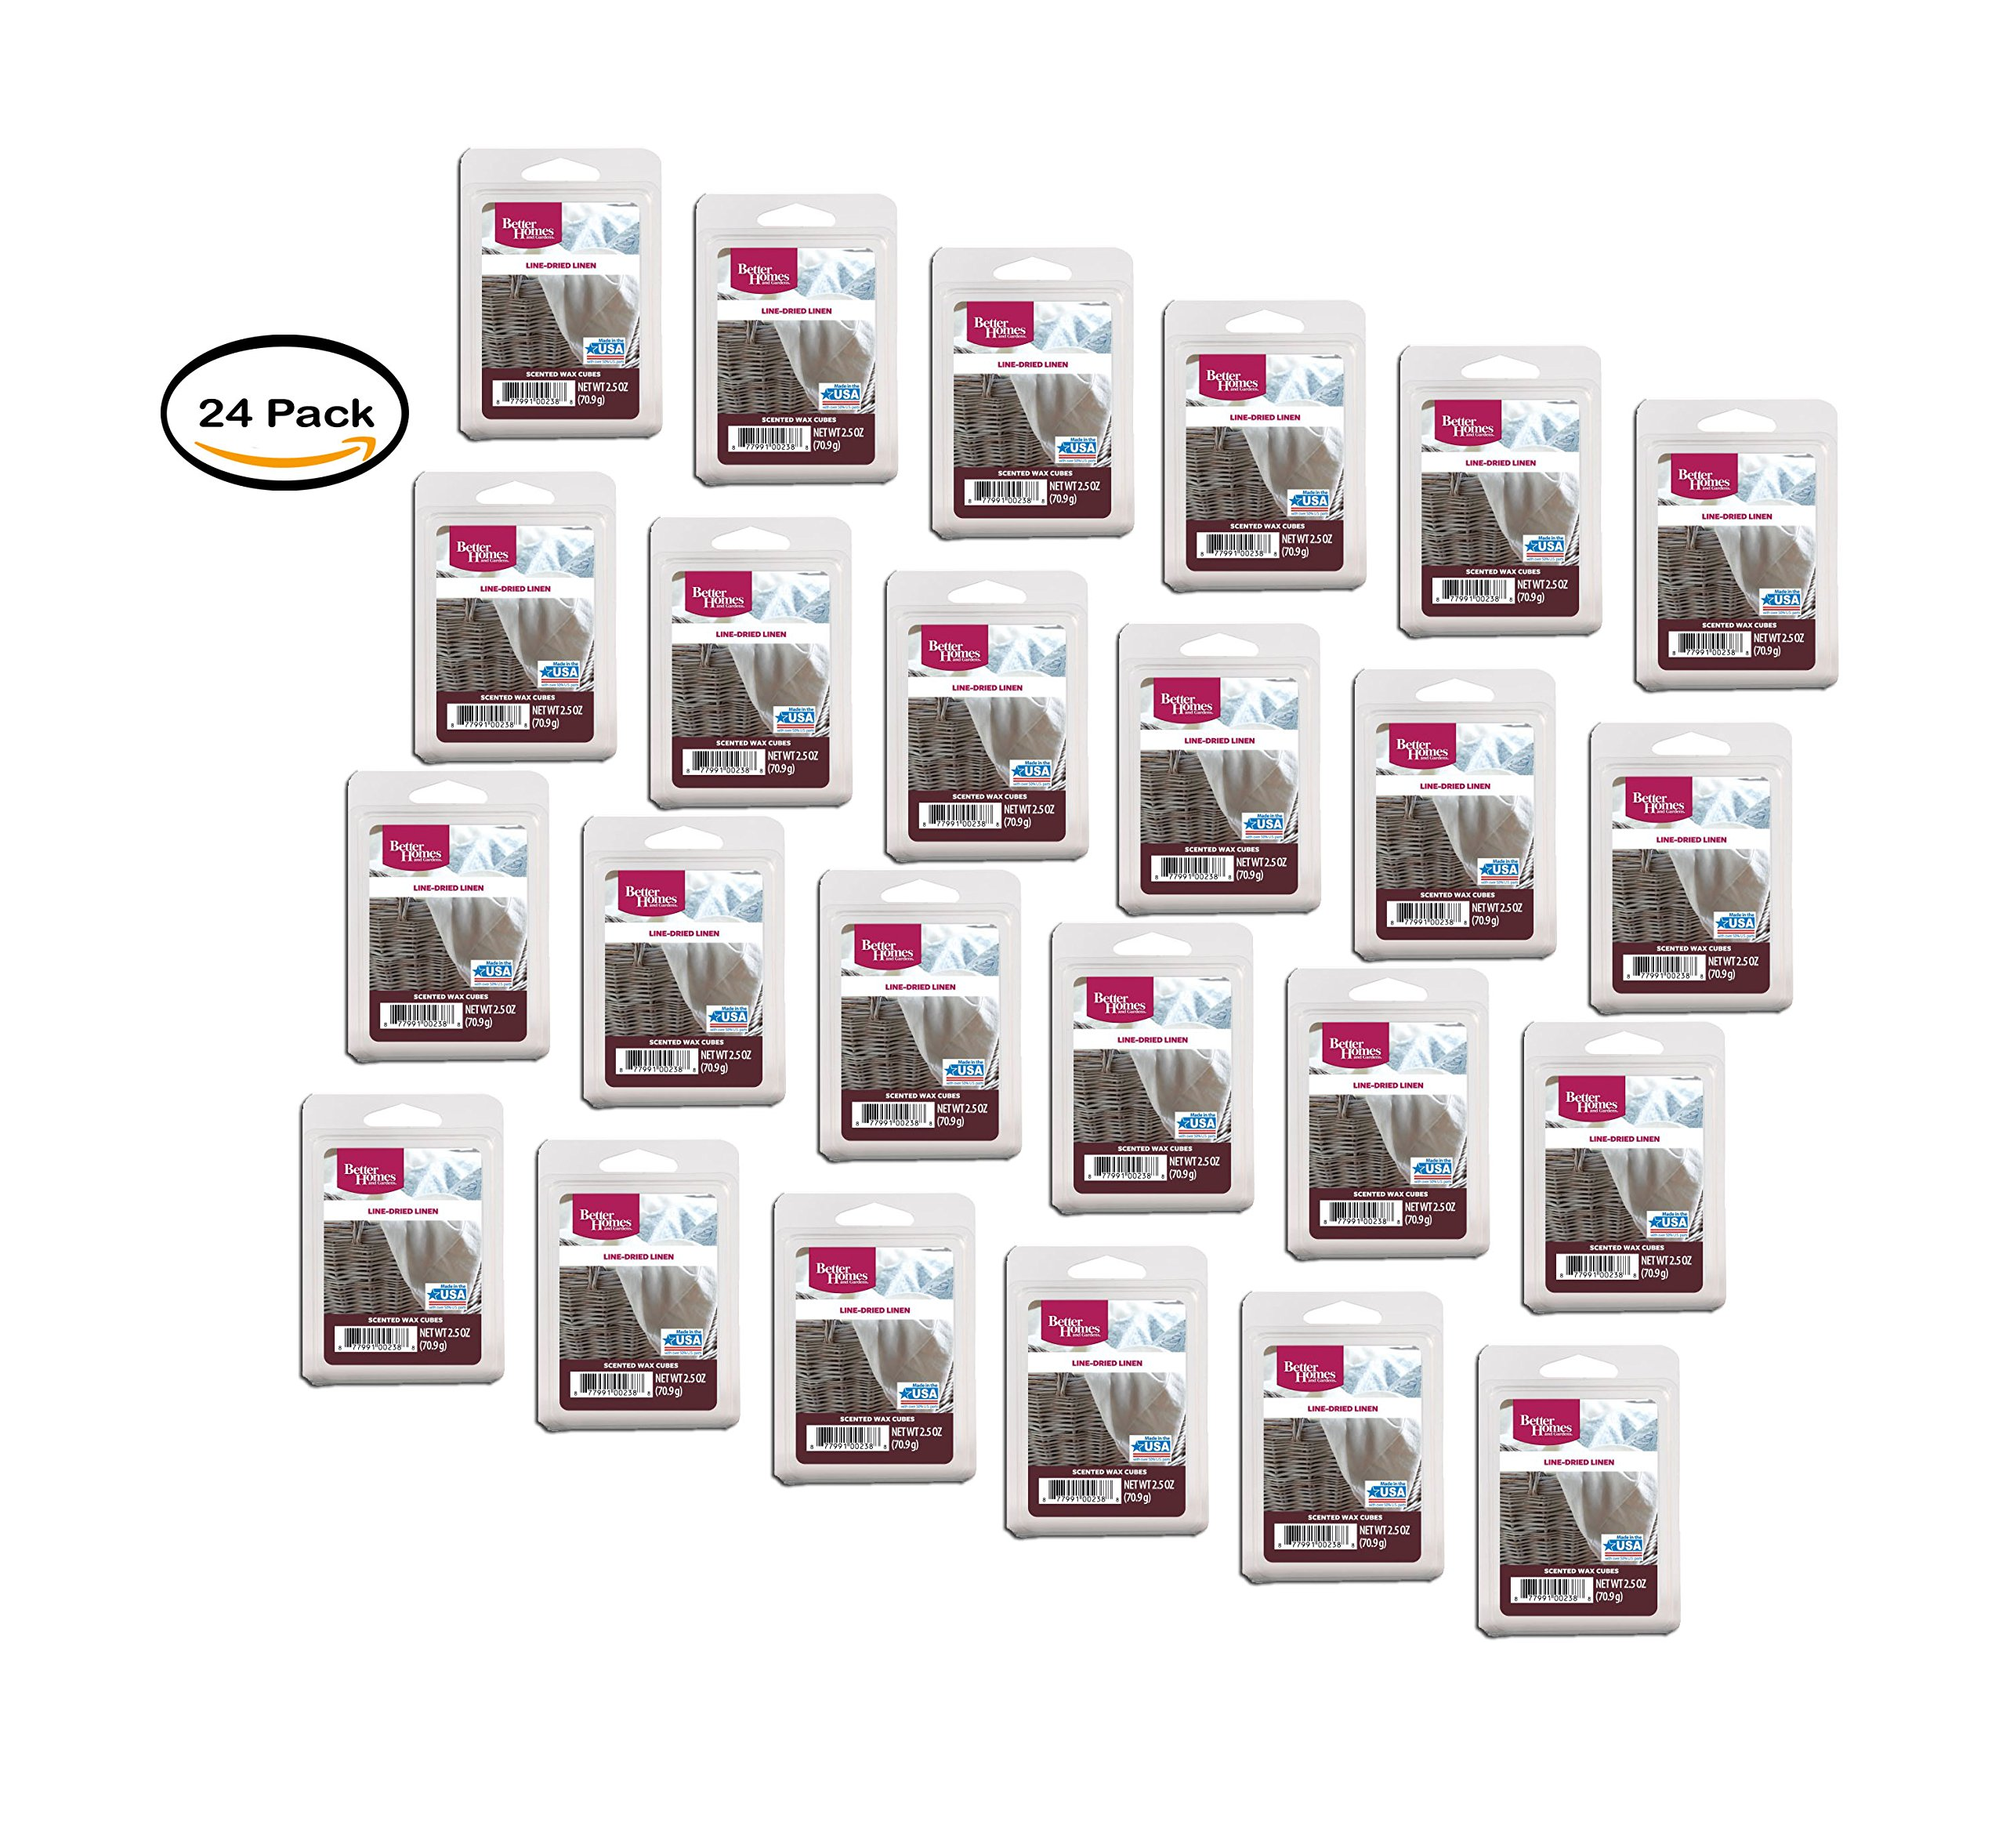 PACK OF 24 - Better Homes and Gardens Wax Cubes, Line-Dried Linen by Better Homes and Gardens